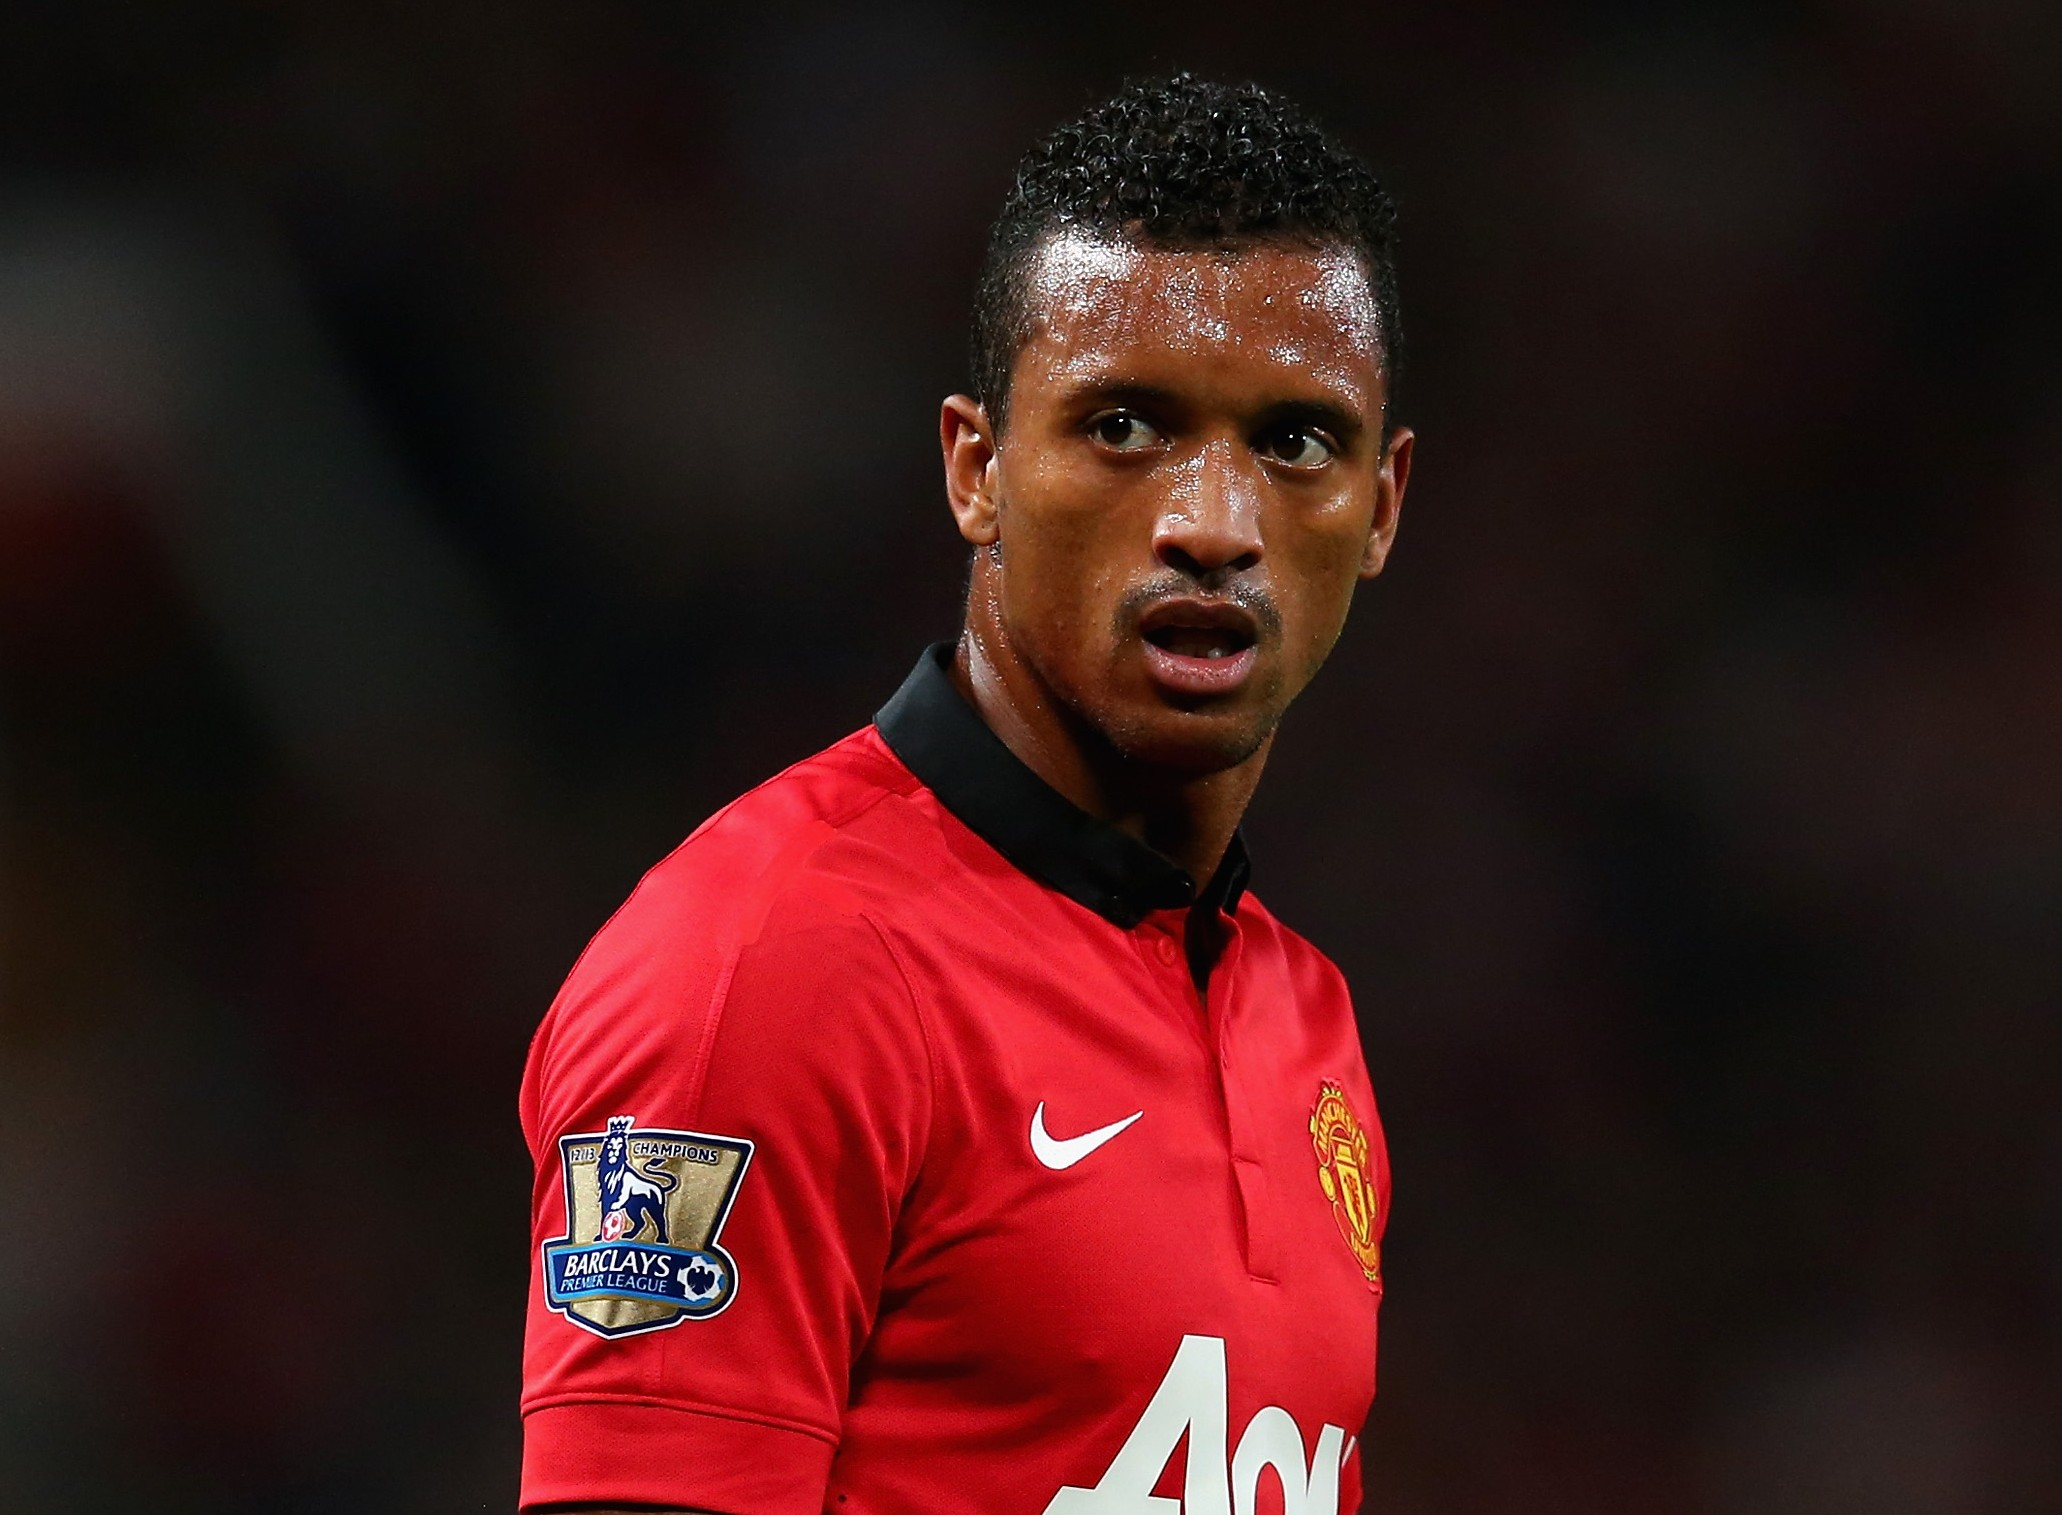 DONE DEAL Fenerbahce Signs Nani The Trent